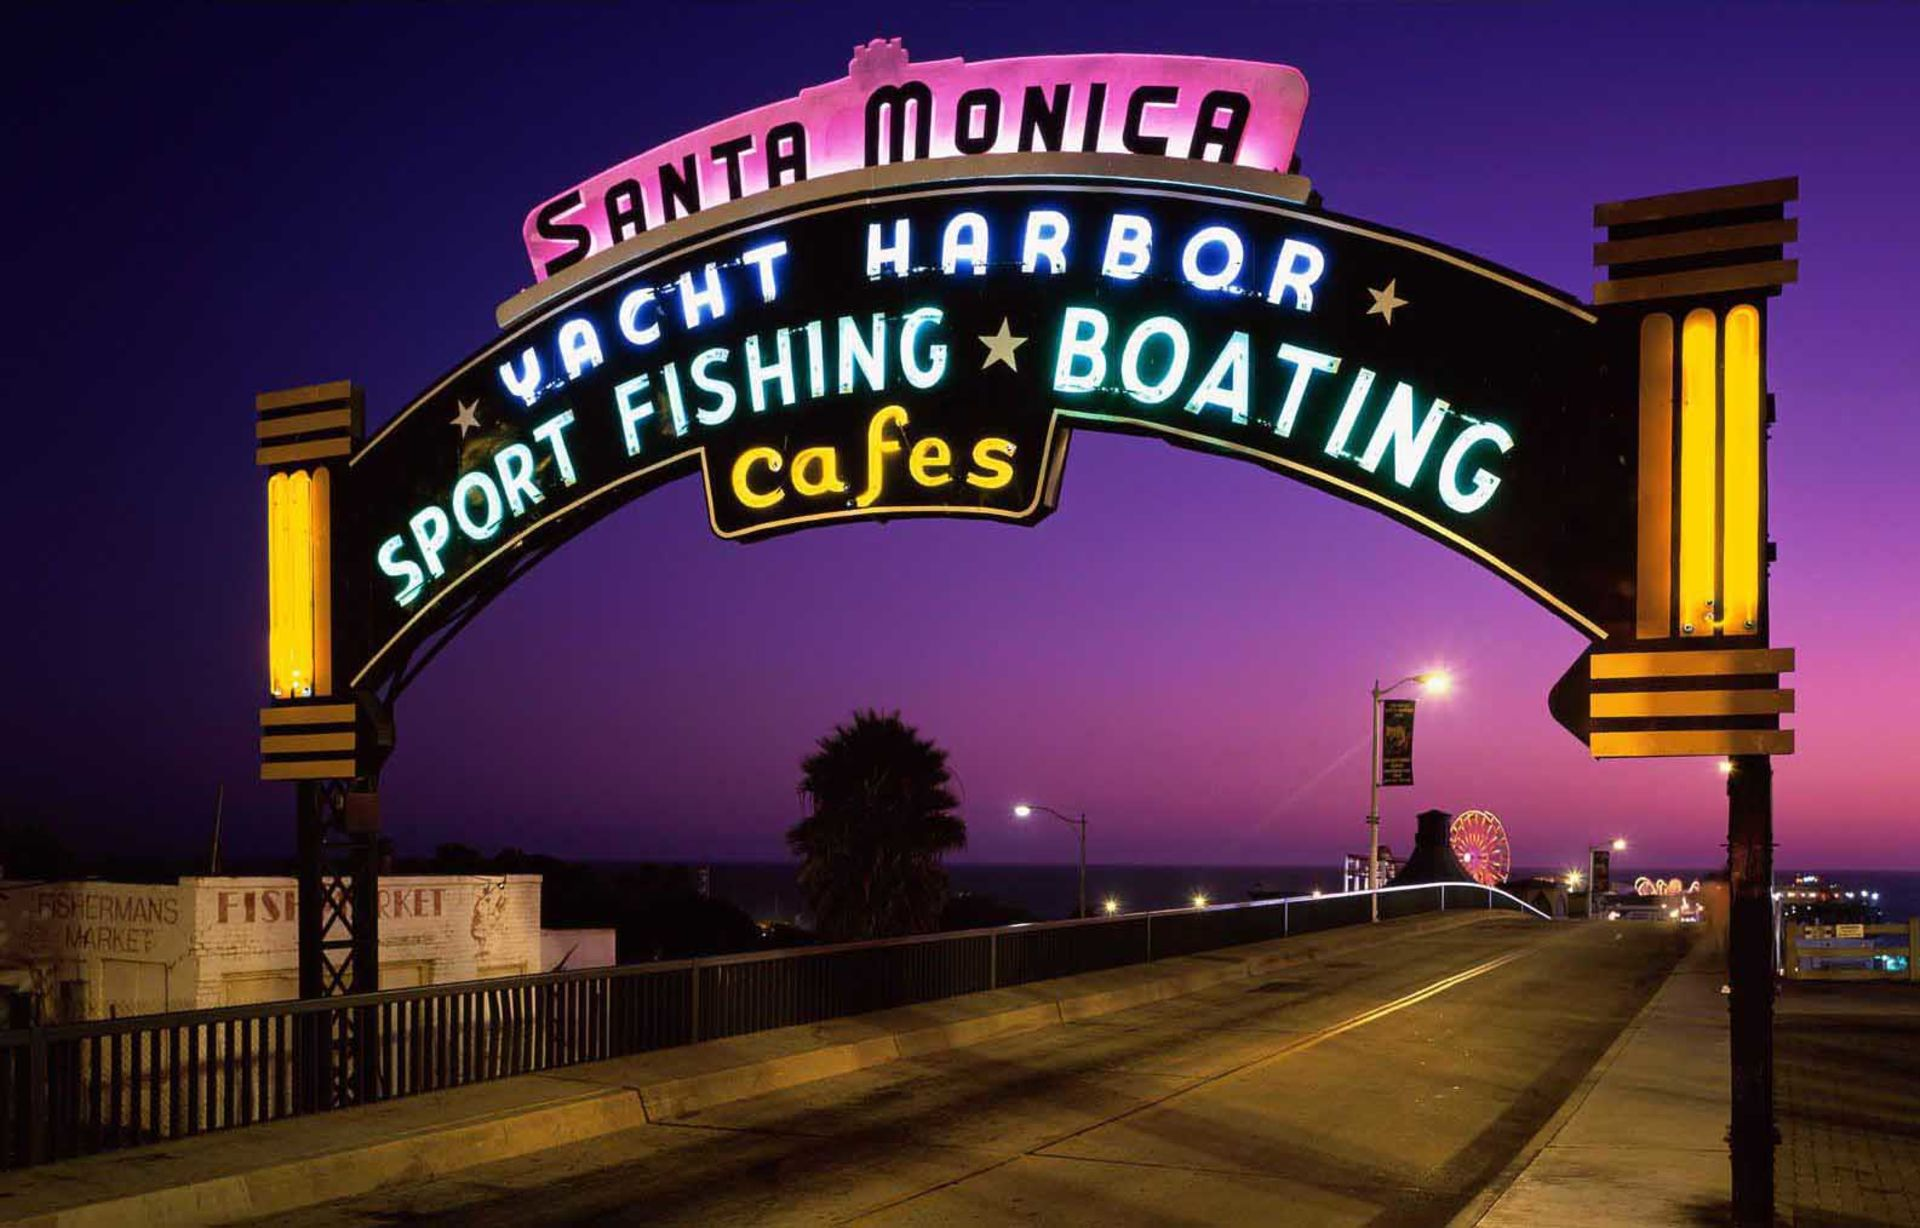 Top 3 Places to Live in Santa Monica